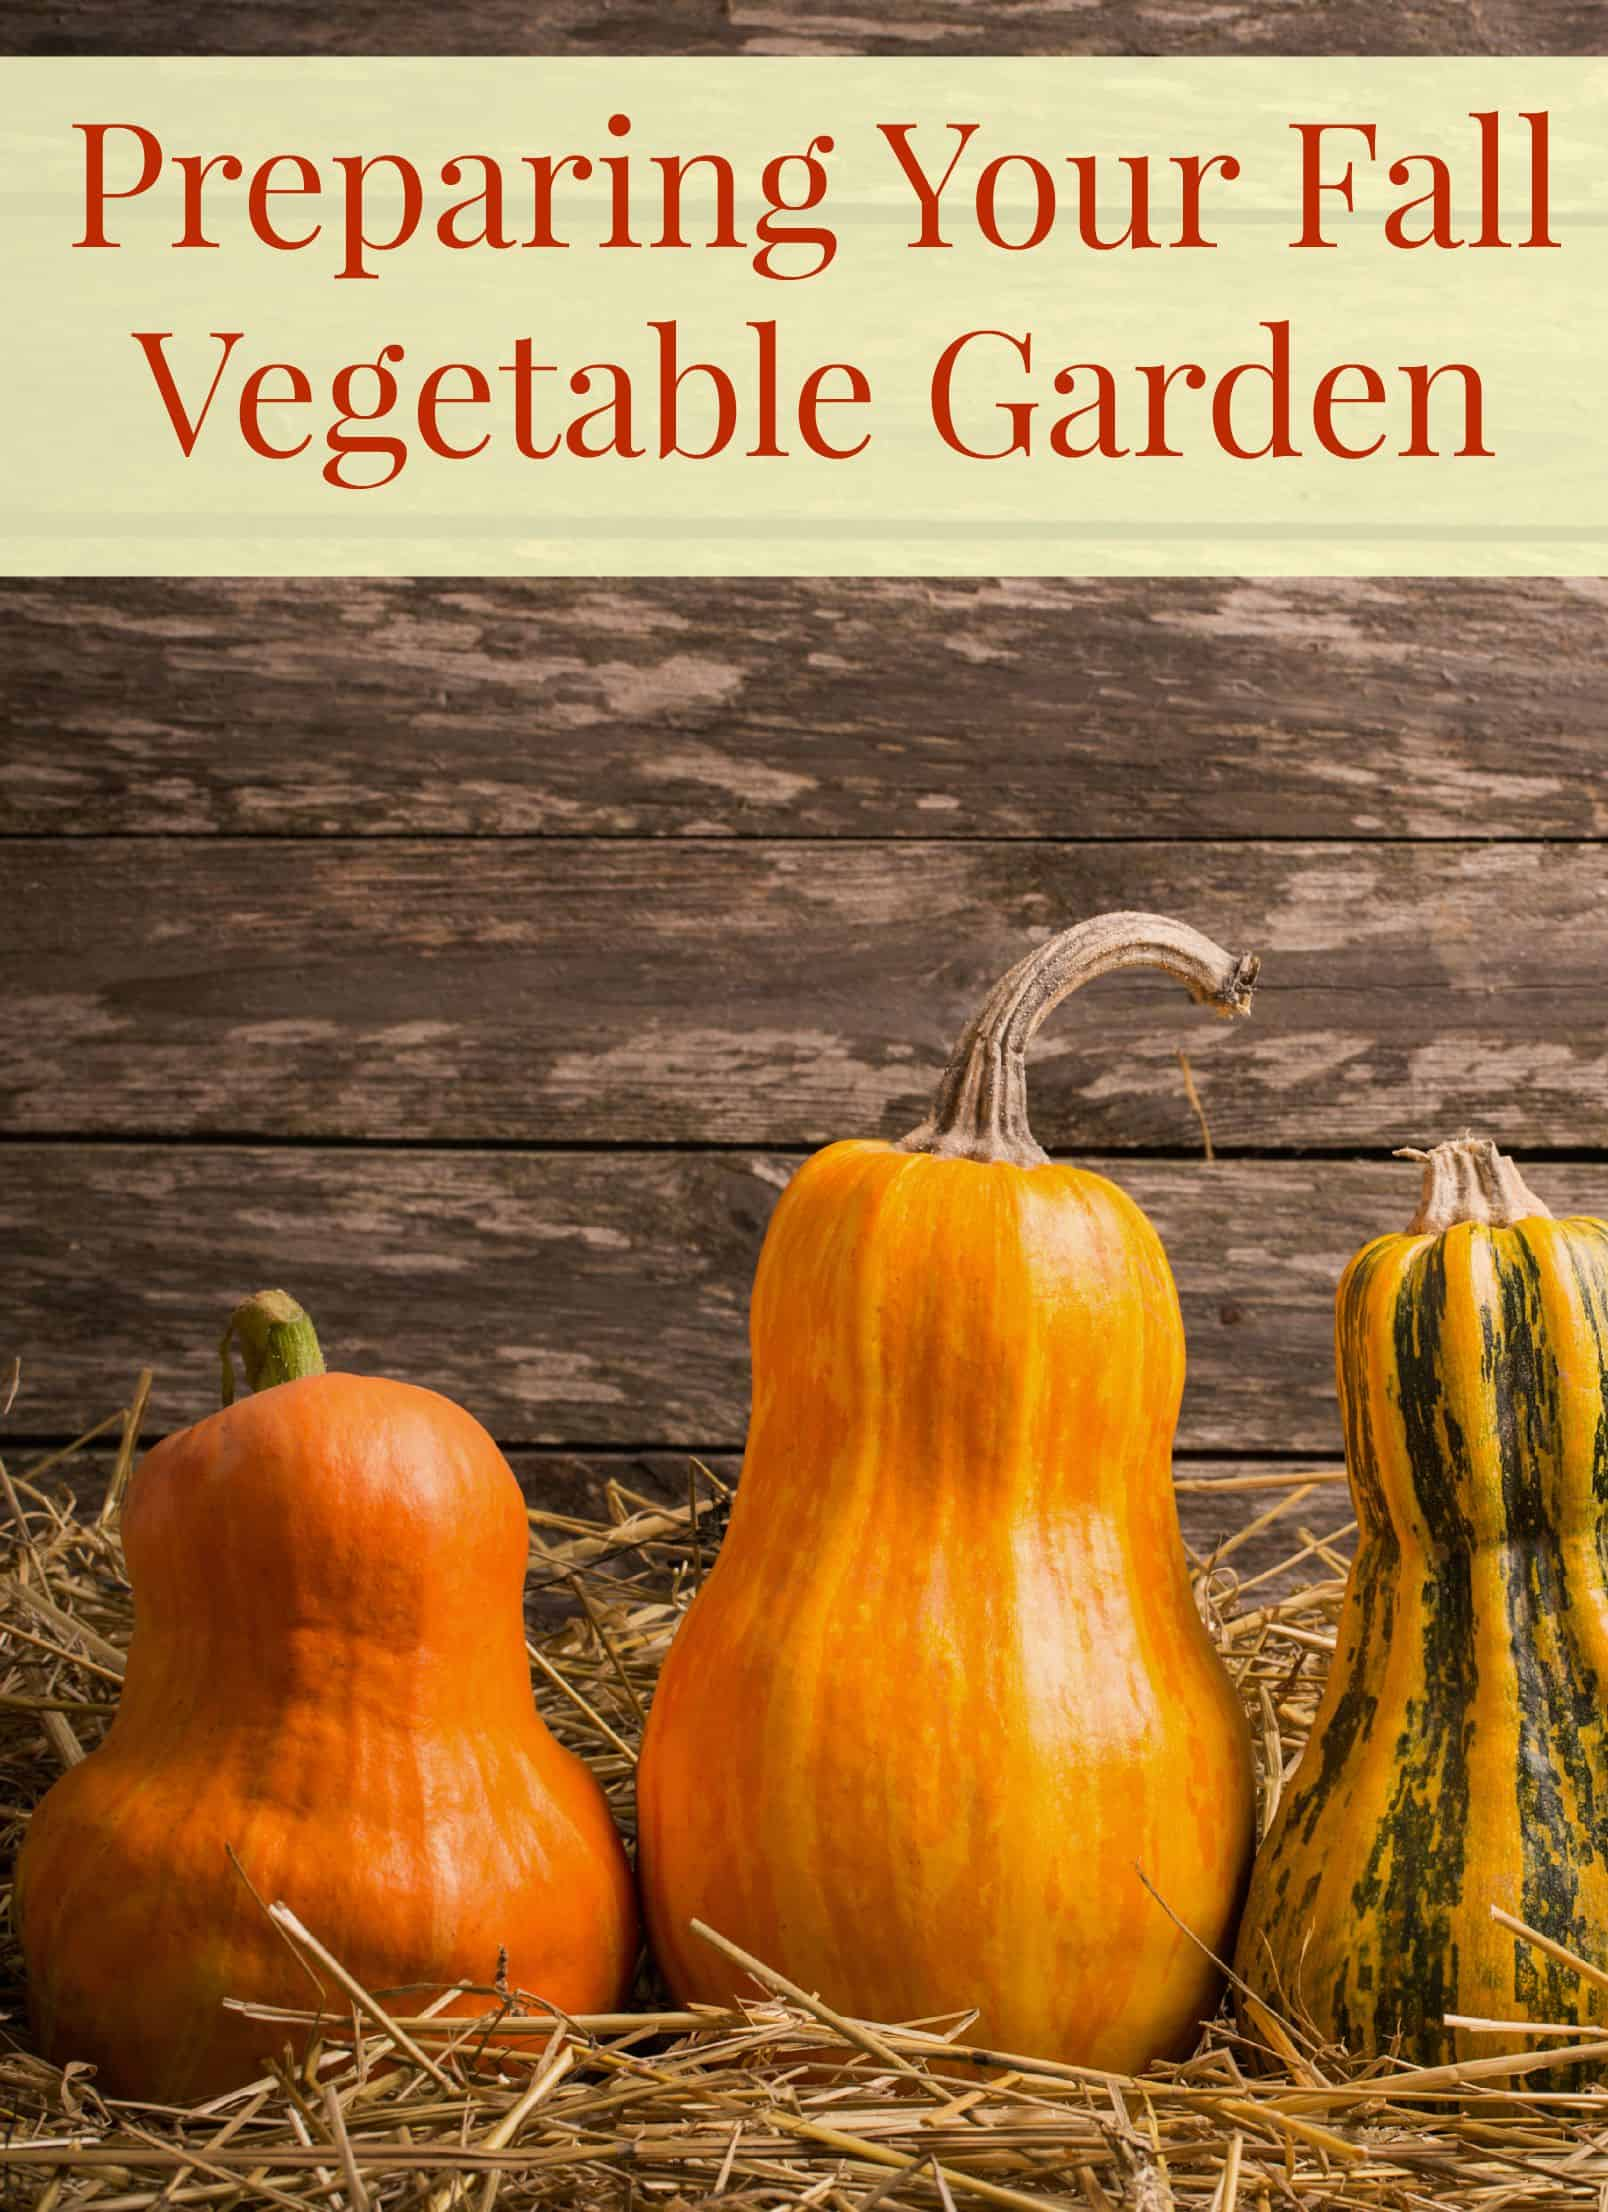 Gardening Tips To Help You Prepare Your Fall Vegetable Garden